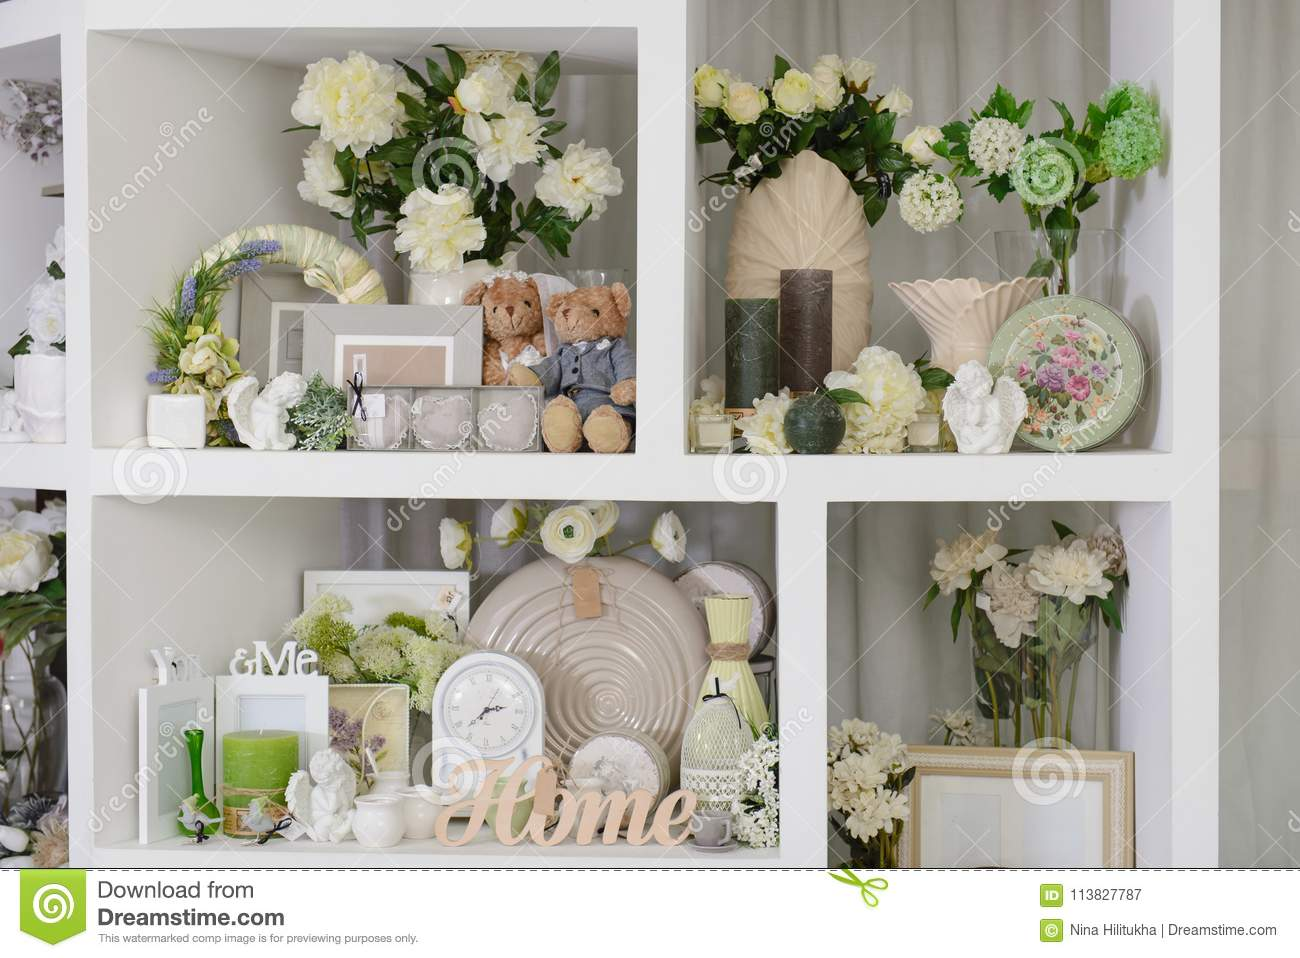 Decor For Home In Pastel Colors Stock Image Image Of Frame